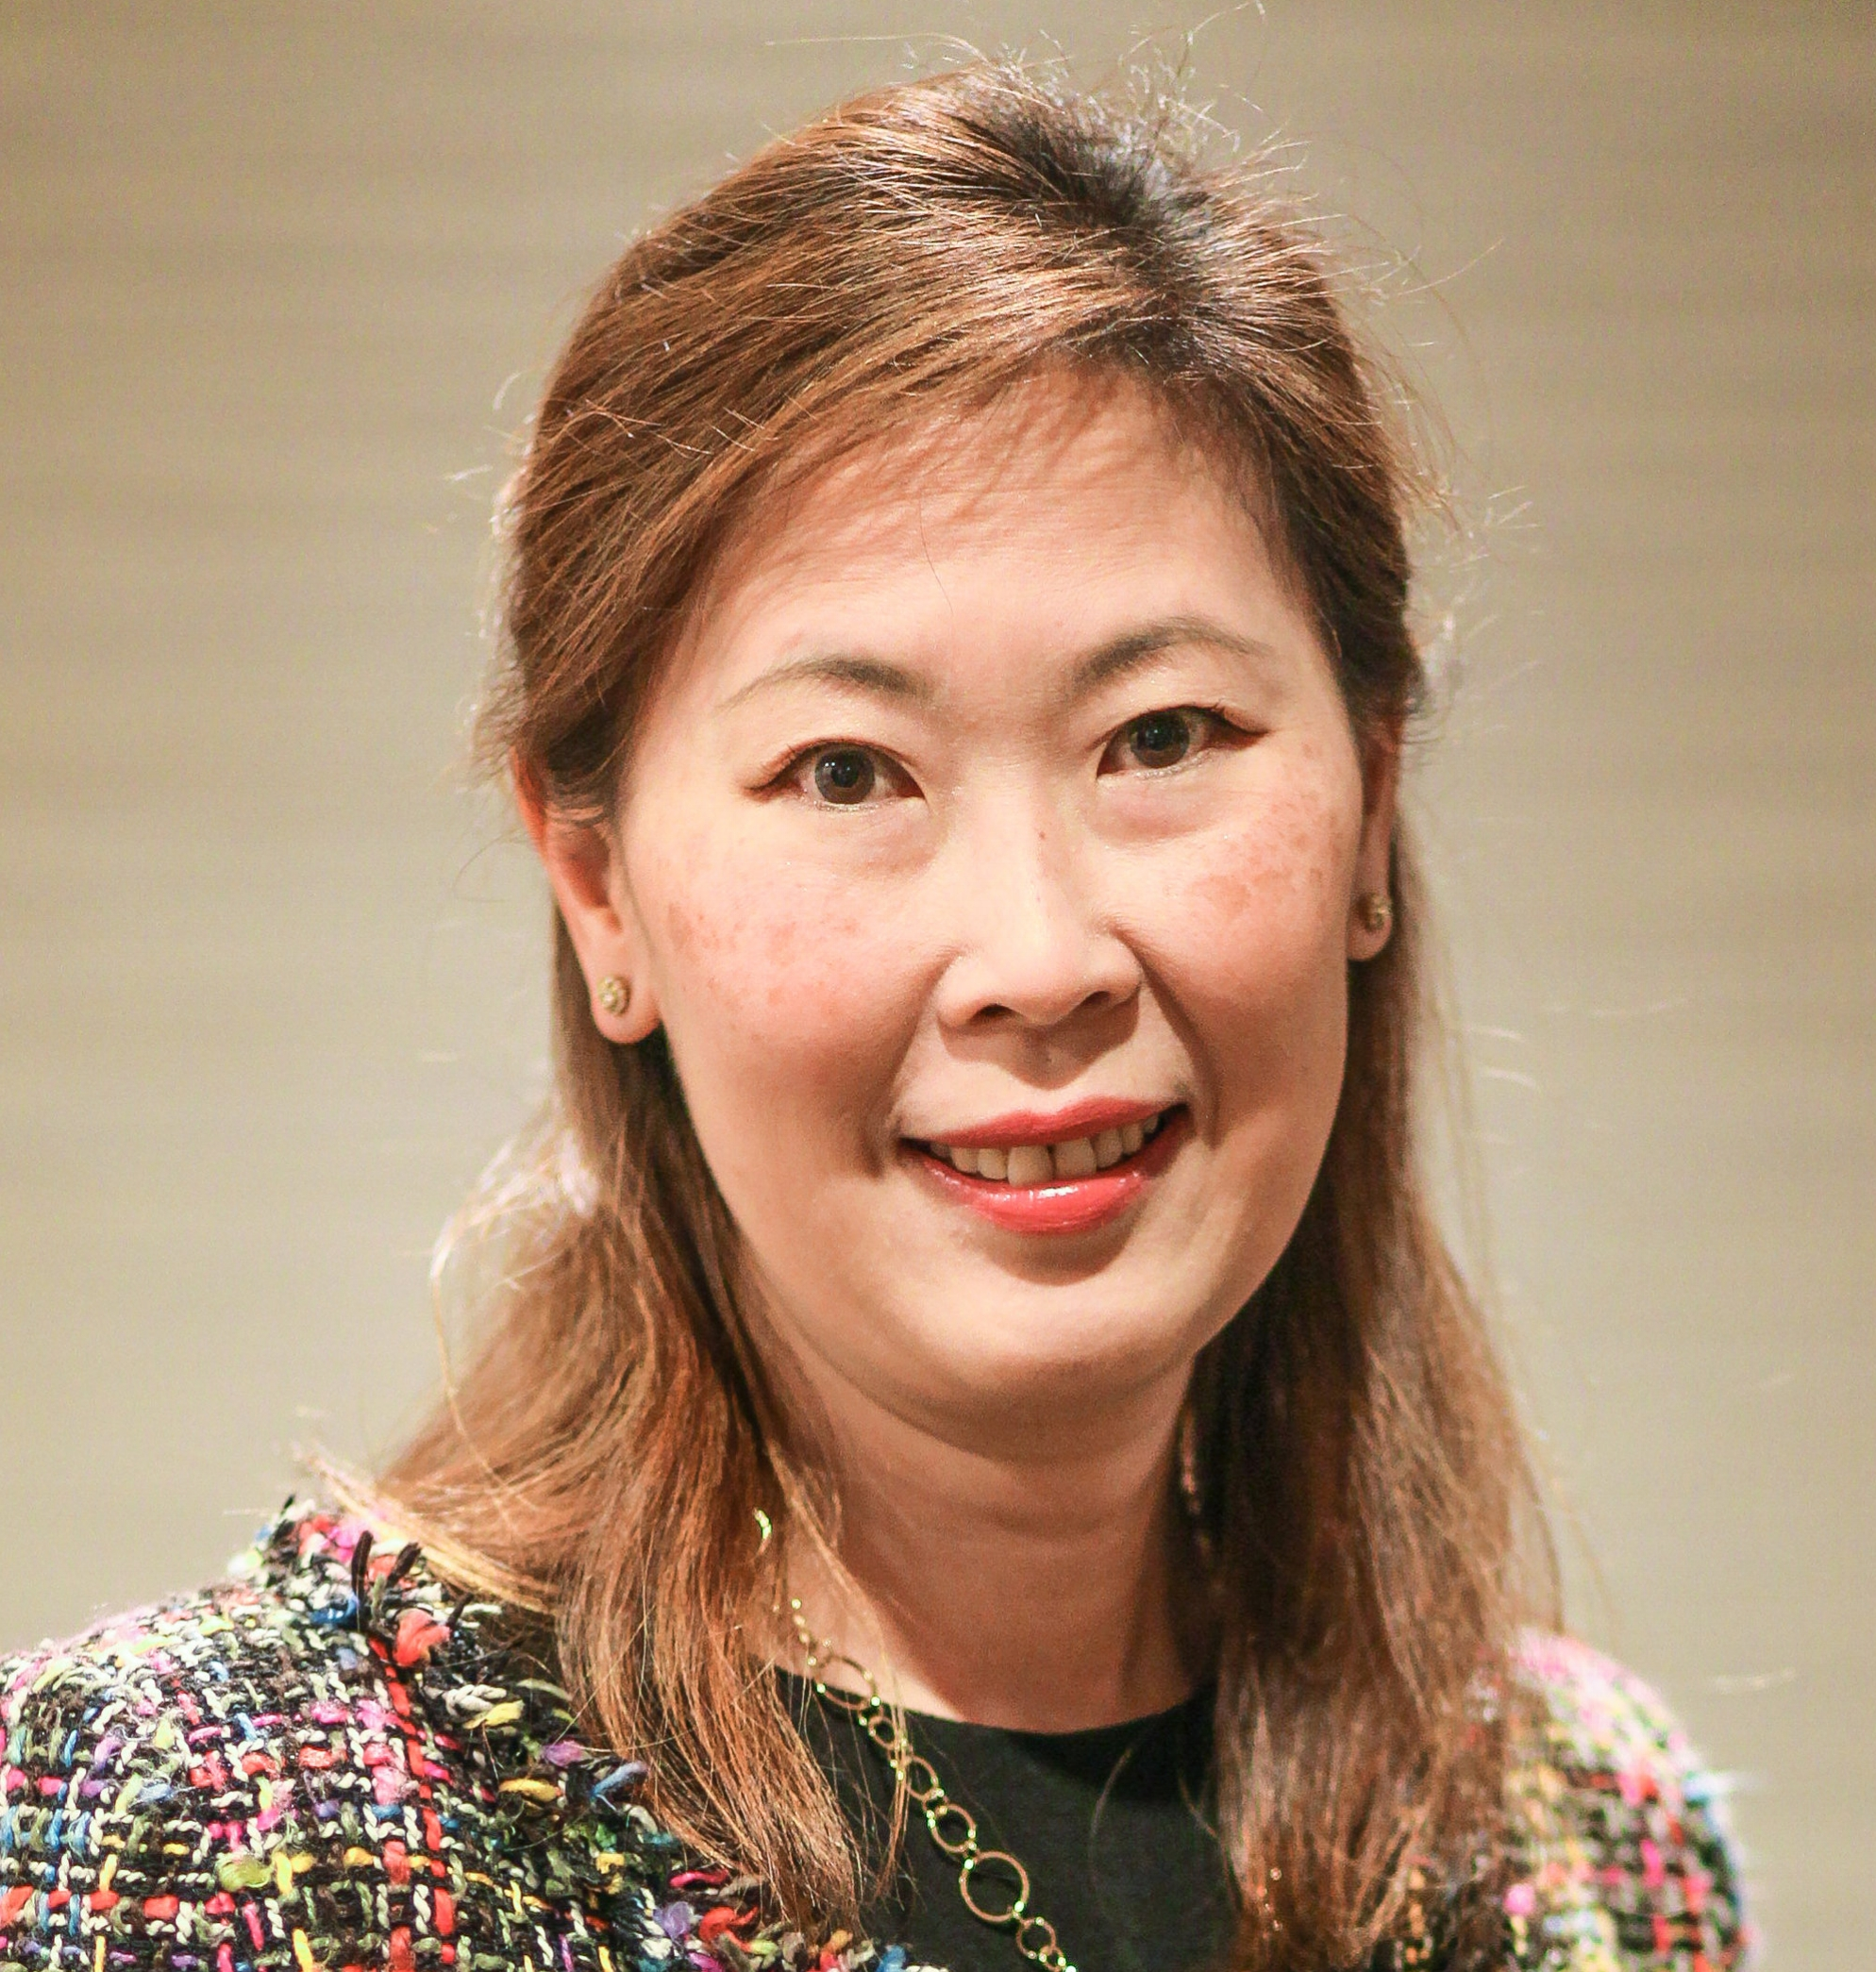 <b>Catherine Sia Cheng Teh, M.D.</b><br>Chief,<br>Hepatobiliary Pancreatic Section<br>Department of Surgery<br>Makati Medical Center